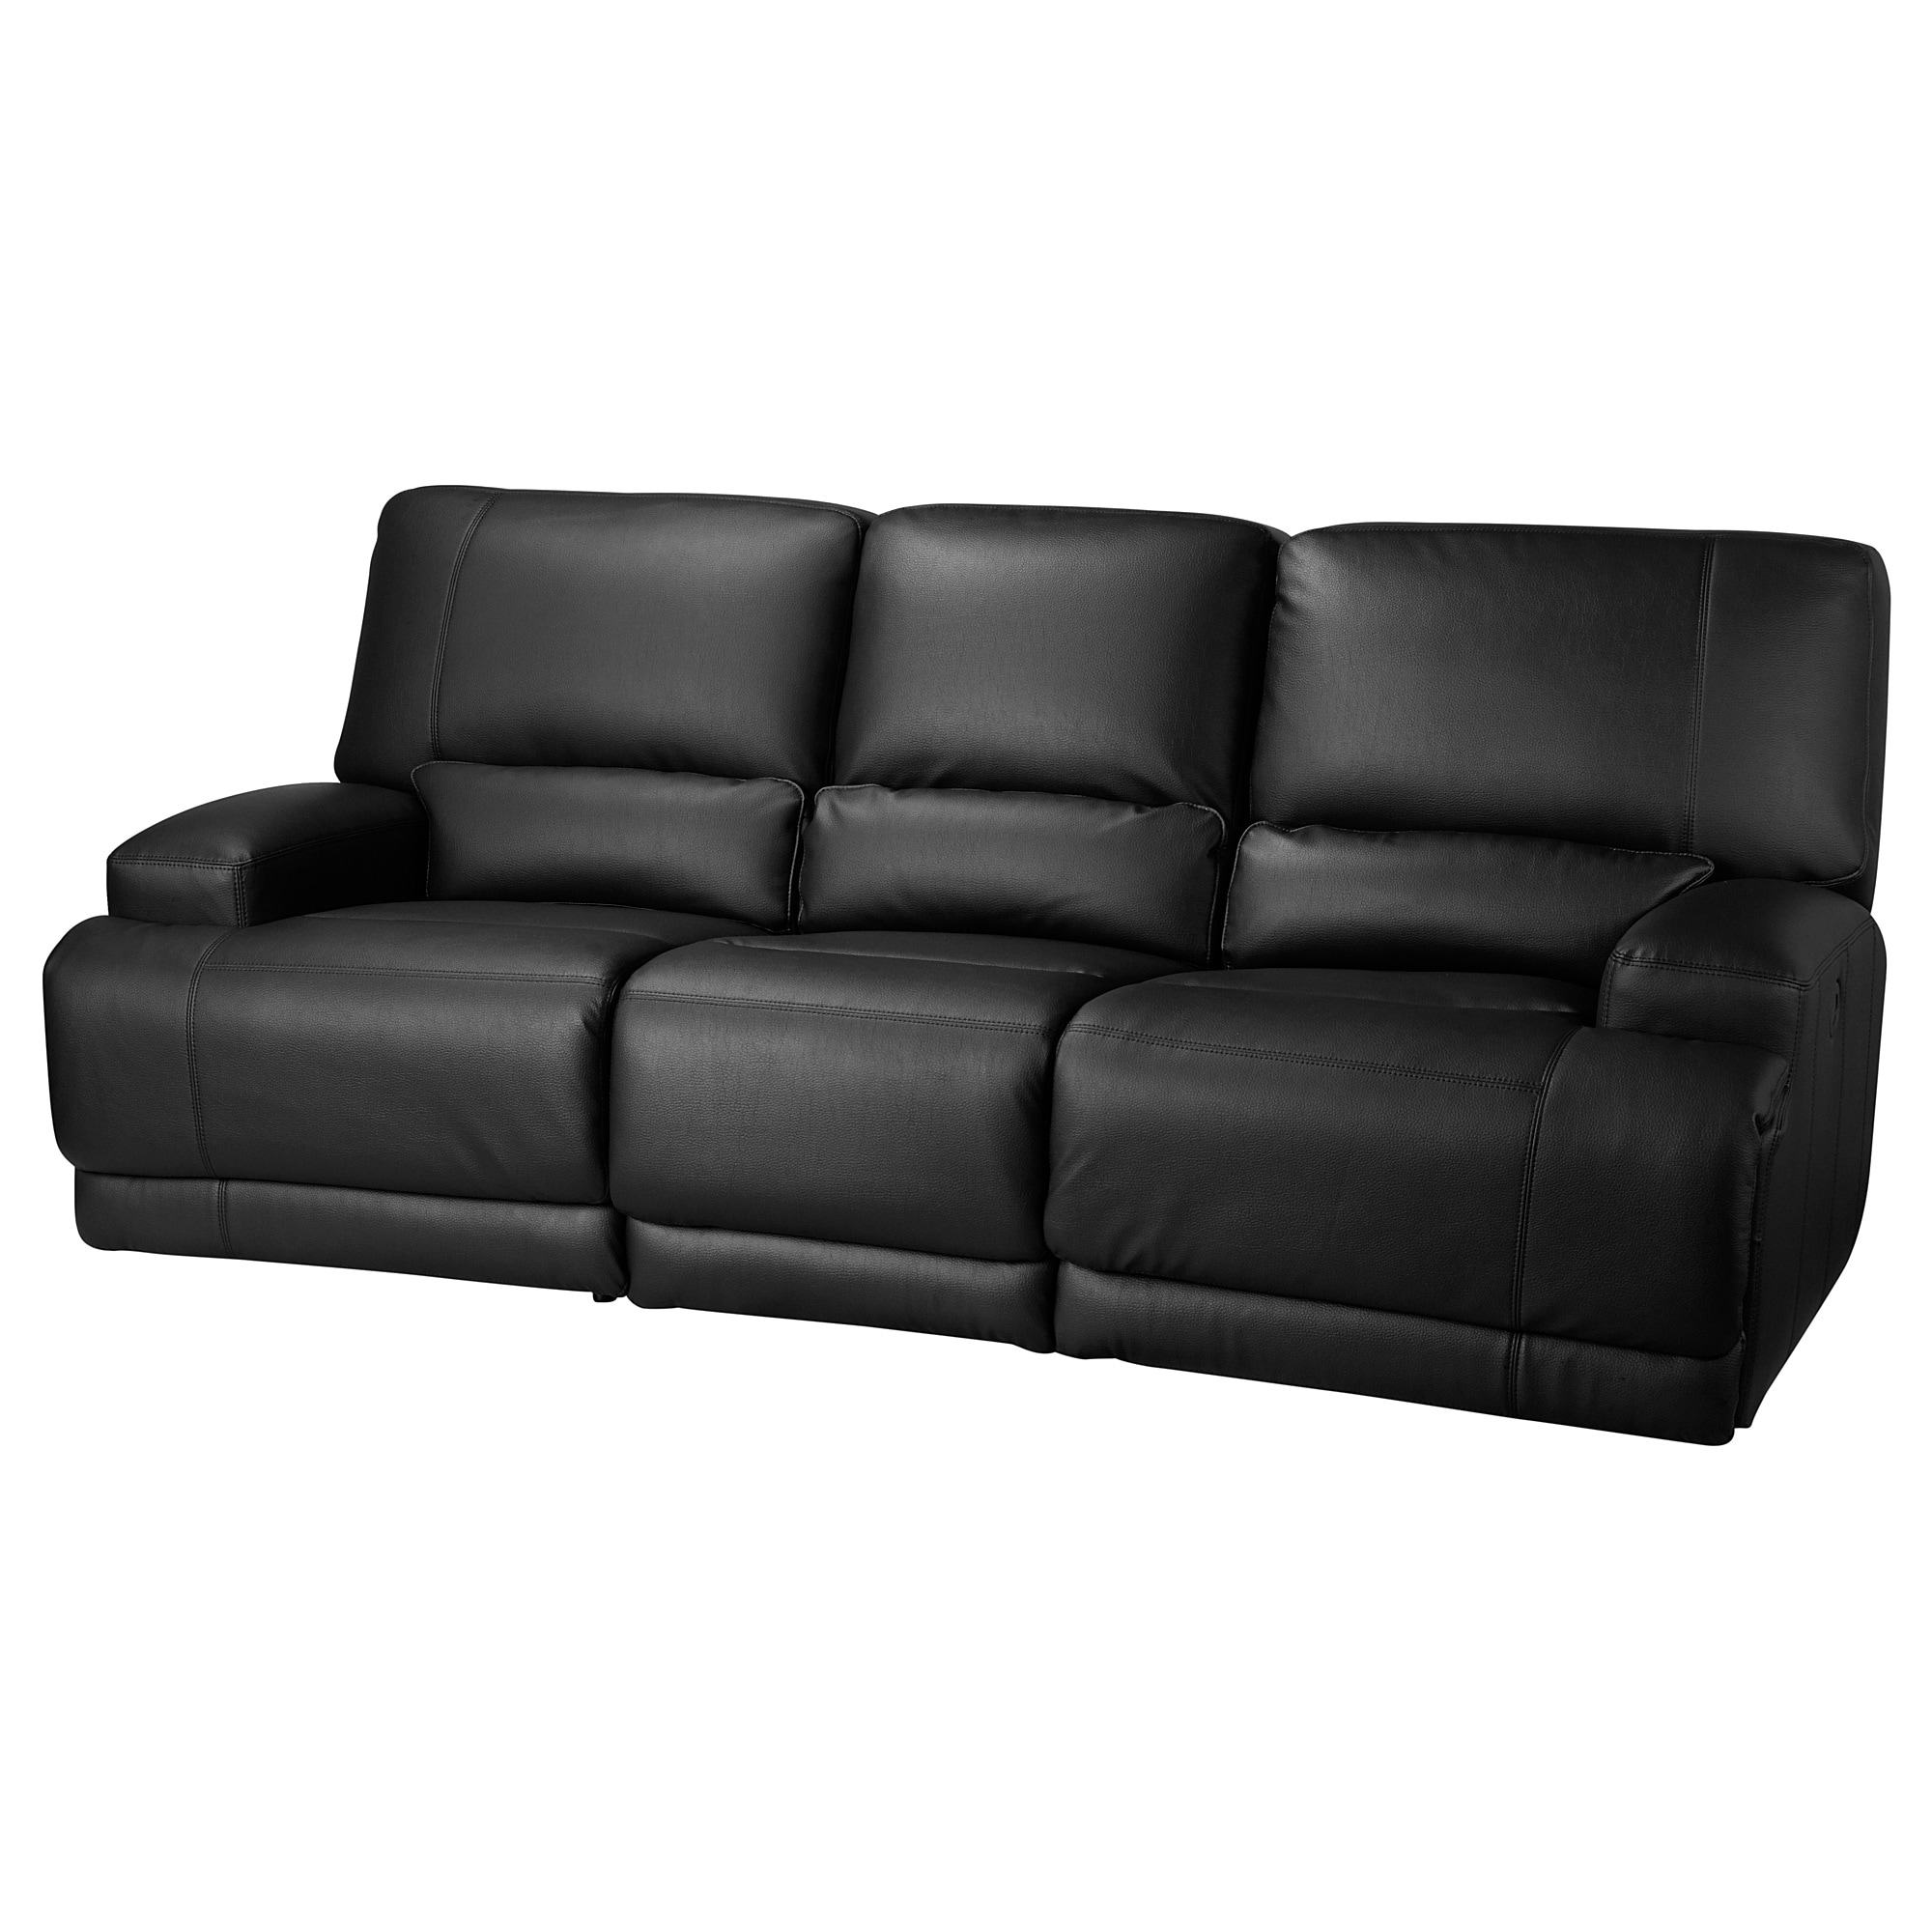 leather faux leather sofas ikea rh ikea com leather sofa ikea uk leather sofa ikea canada